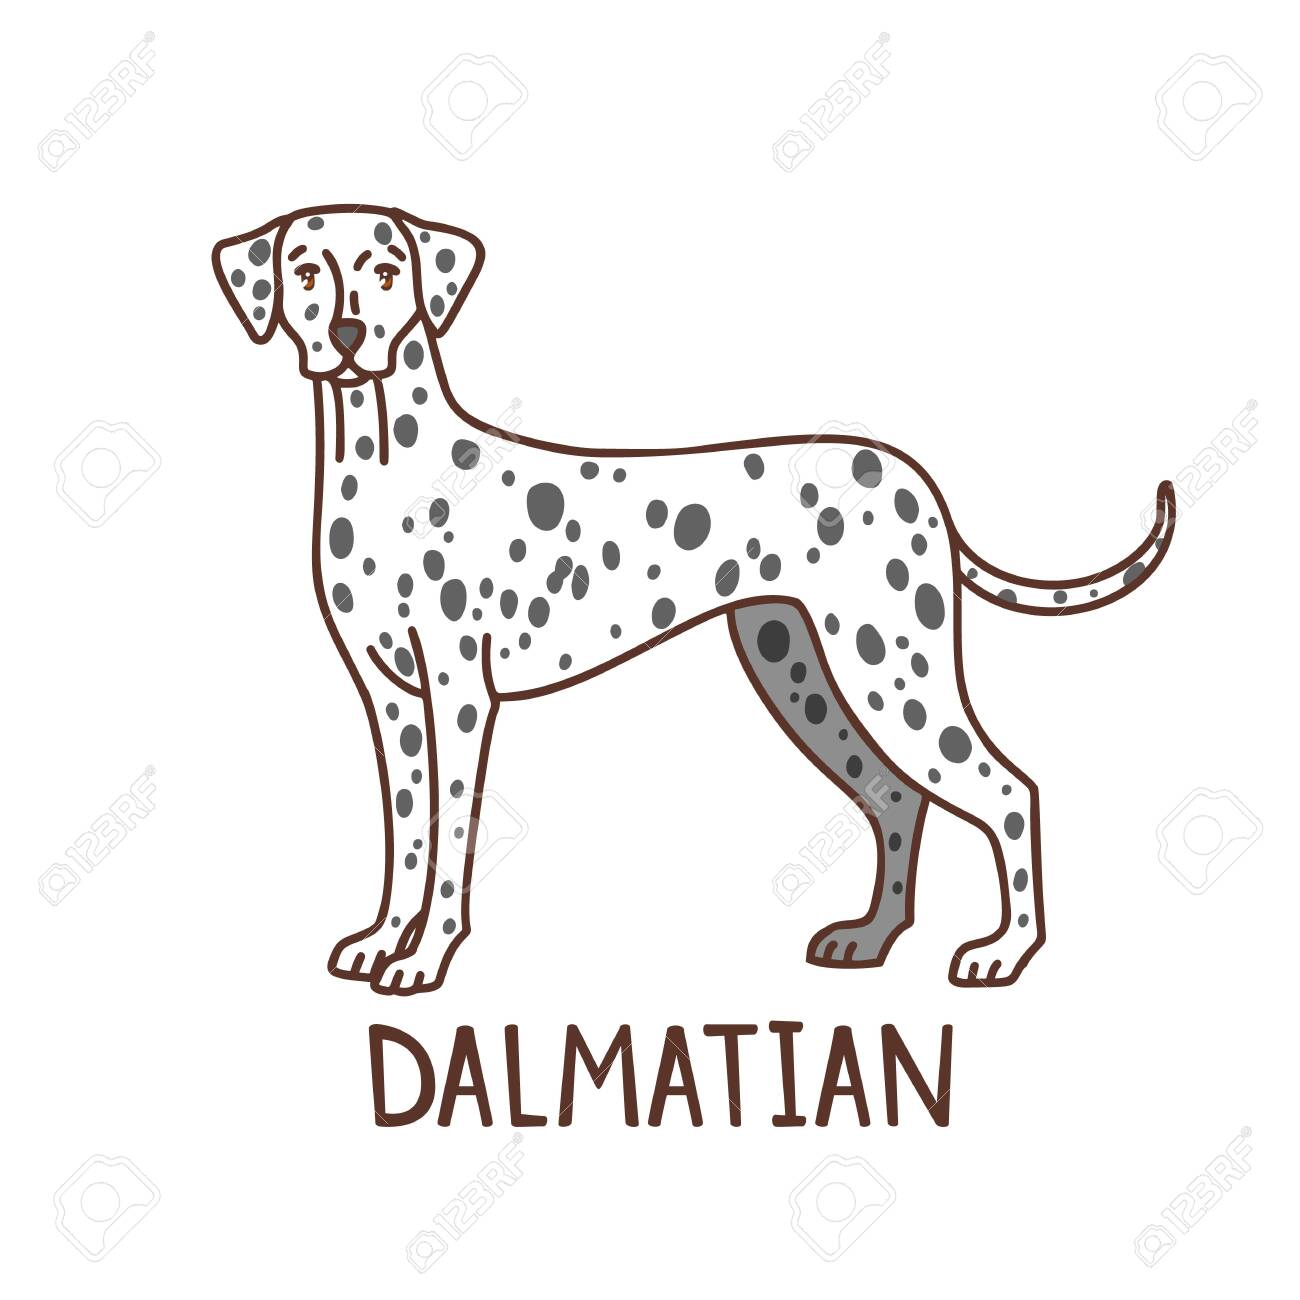 Isolated Dalmatian in Hand Drawn Doodle Style - 137329785